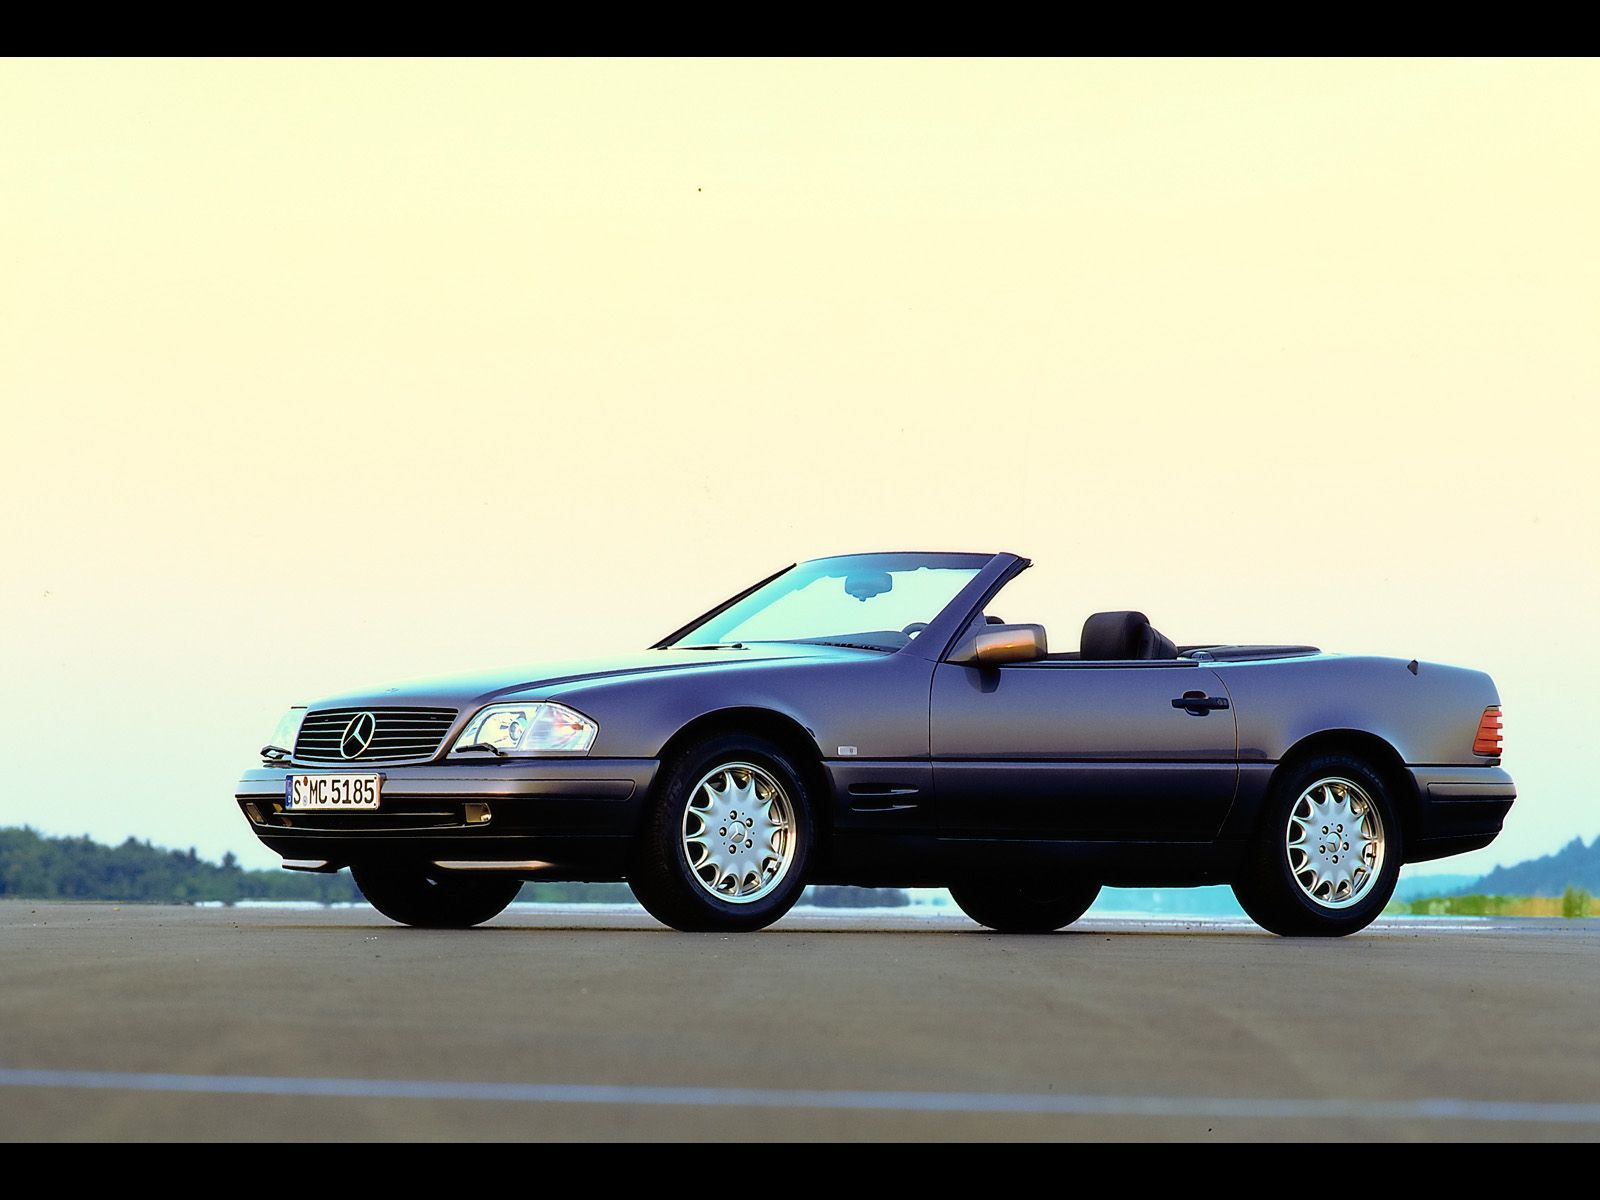 1989-2001 Mercedes-Benz SL R129 - SL 500 after the first major facelift in  1995 2 - 1600x1200 - Wallpaper